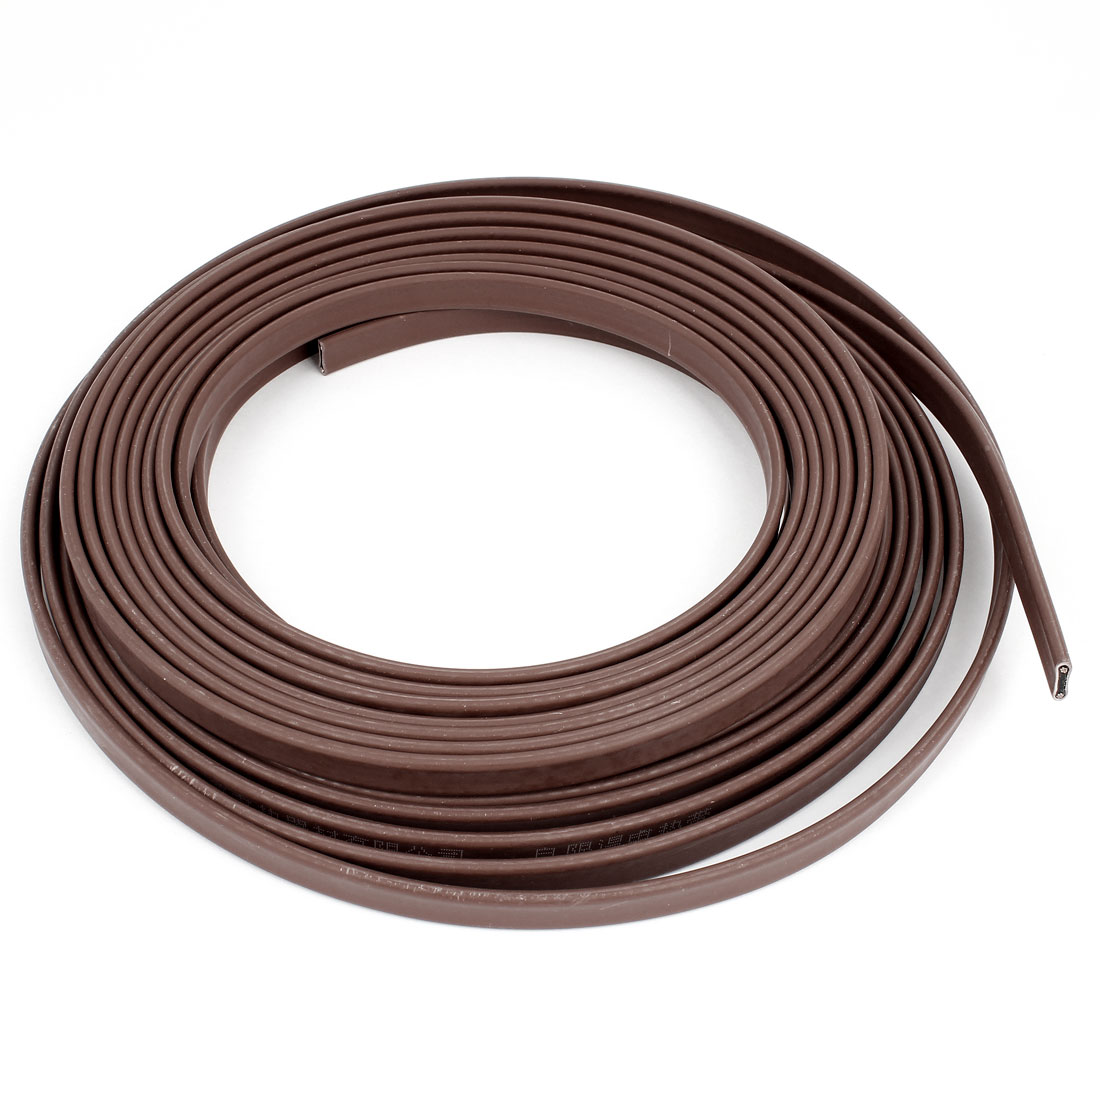 Brick Red Corrosion Prevention Waterproof Heating Cable 220V 10M x 11mm